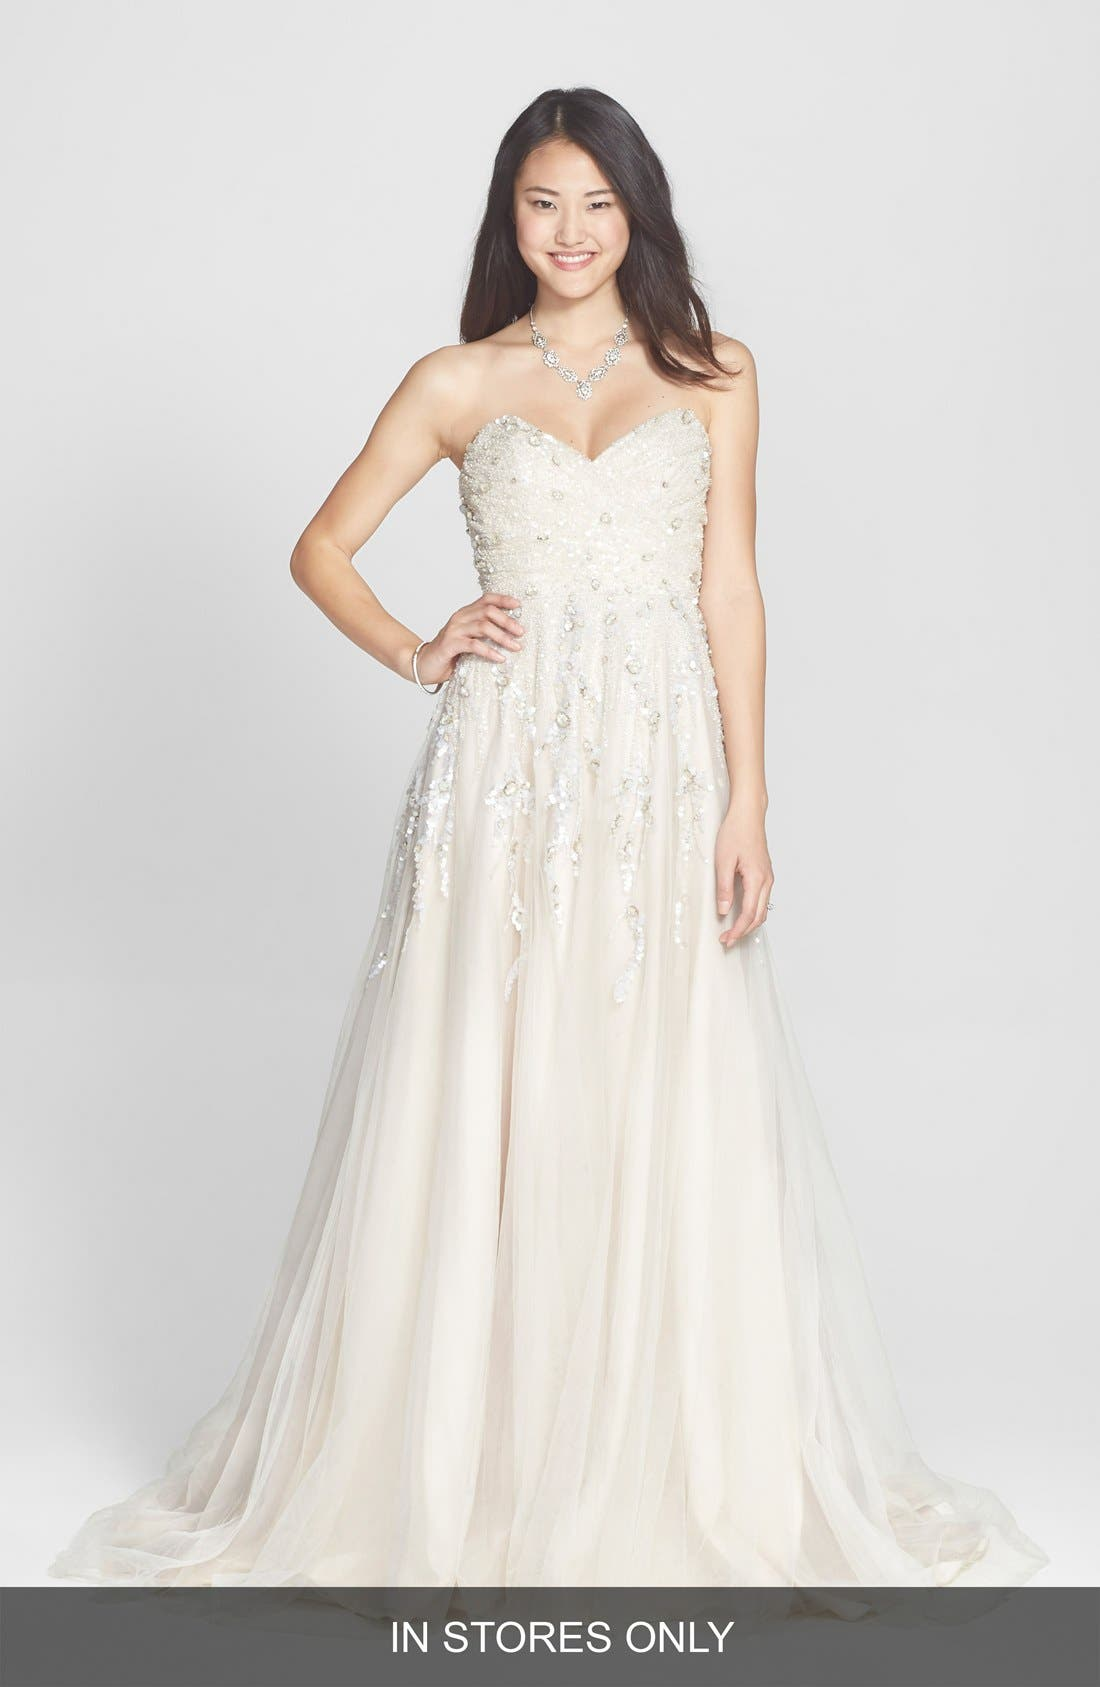 HAYLEY PAIGE 'Star' Embellished Tulle A-Line Dress